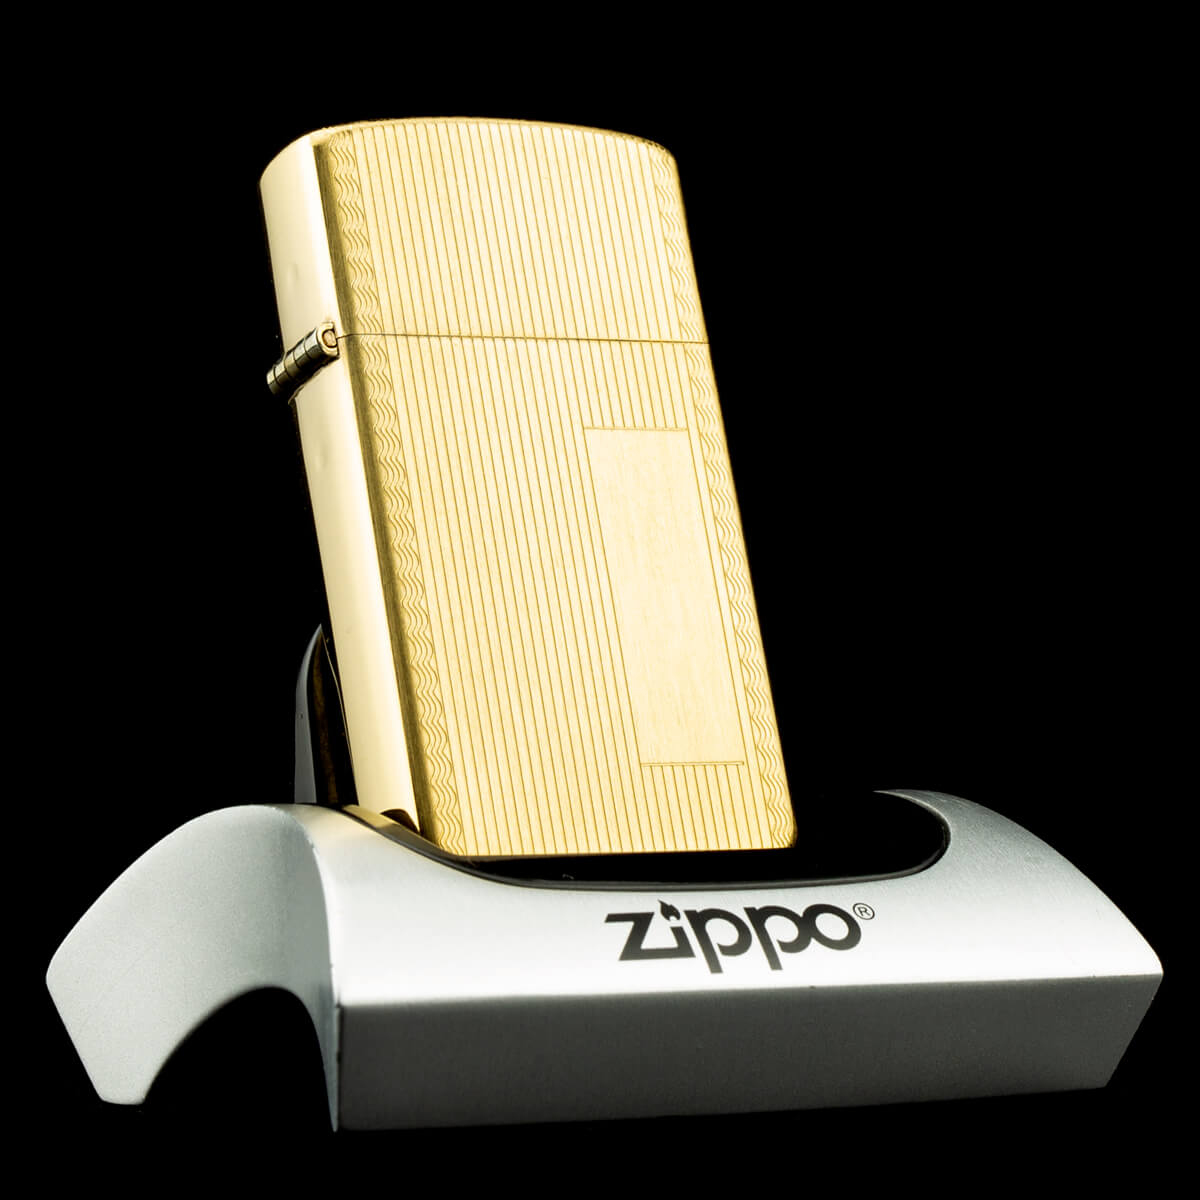 bat-lua-zippo-slim-gold-filled-10k-striped-1970s-phu-vang-hiem